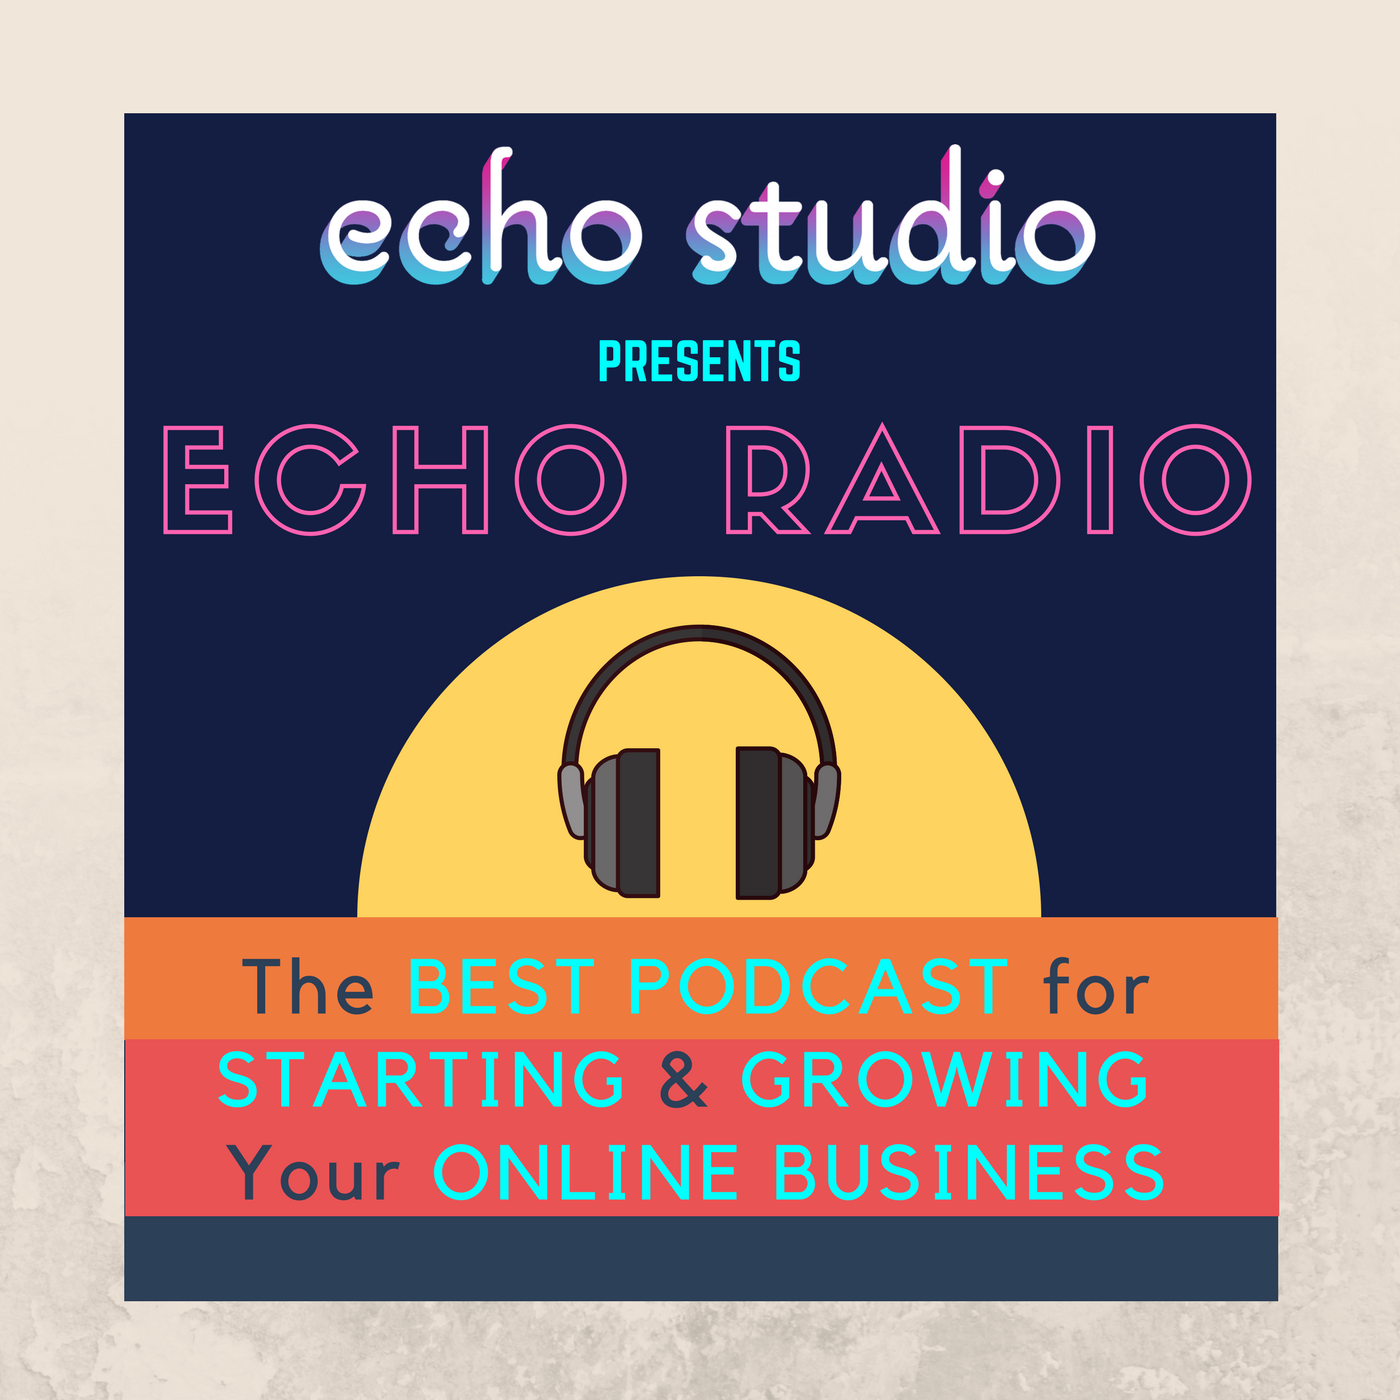 Echo Radio - The Best Podcast for Starting and Growing Your Online Business - with Adrien Harrison of Echo Studio